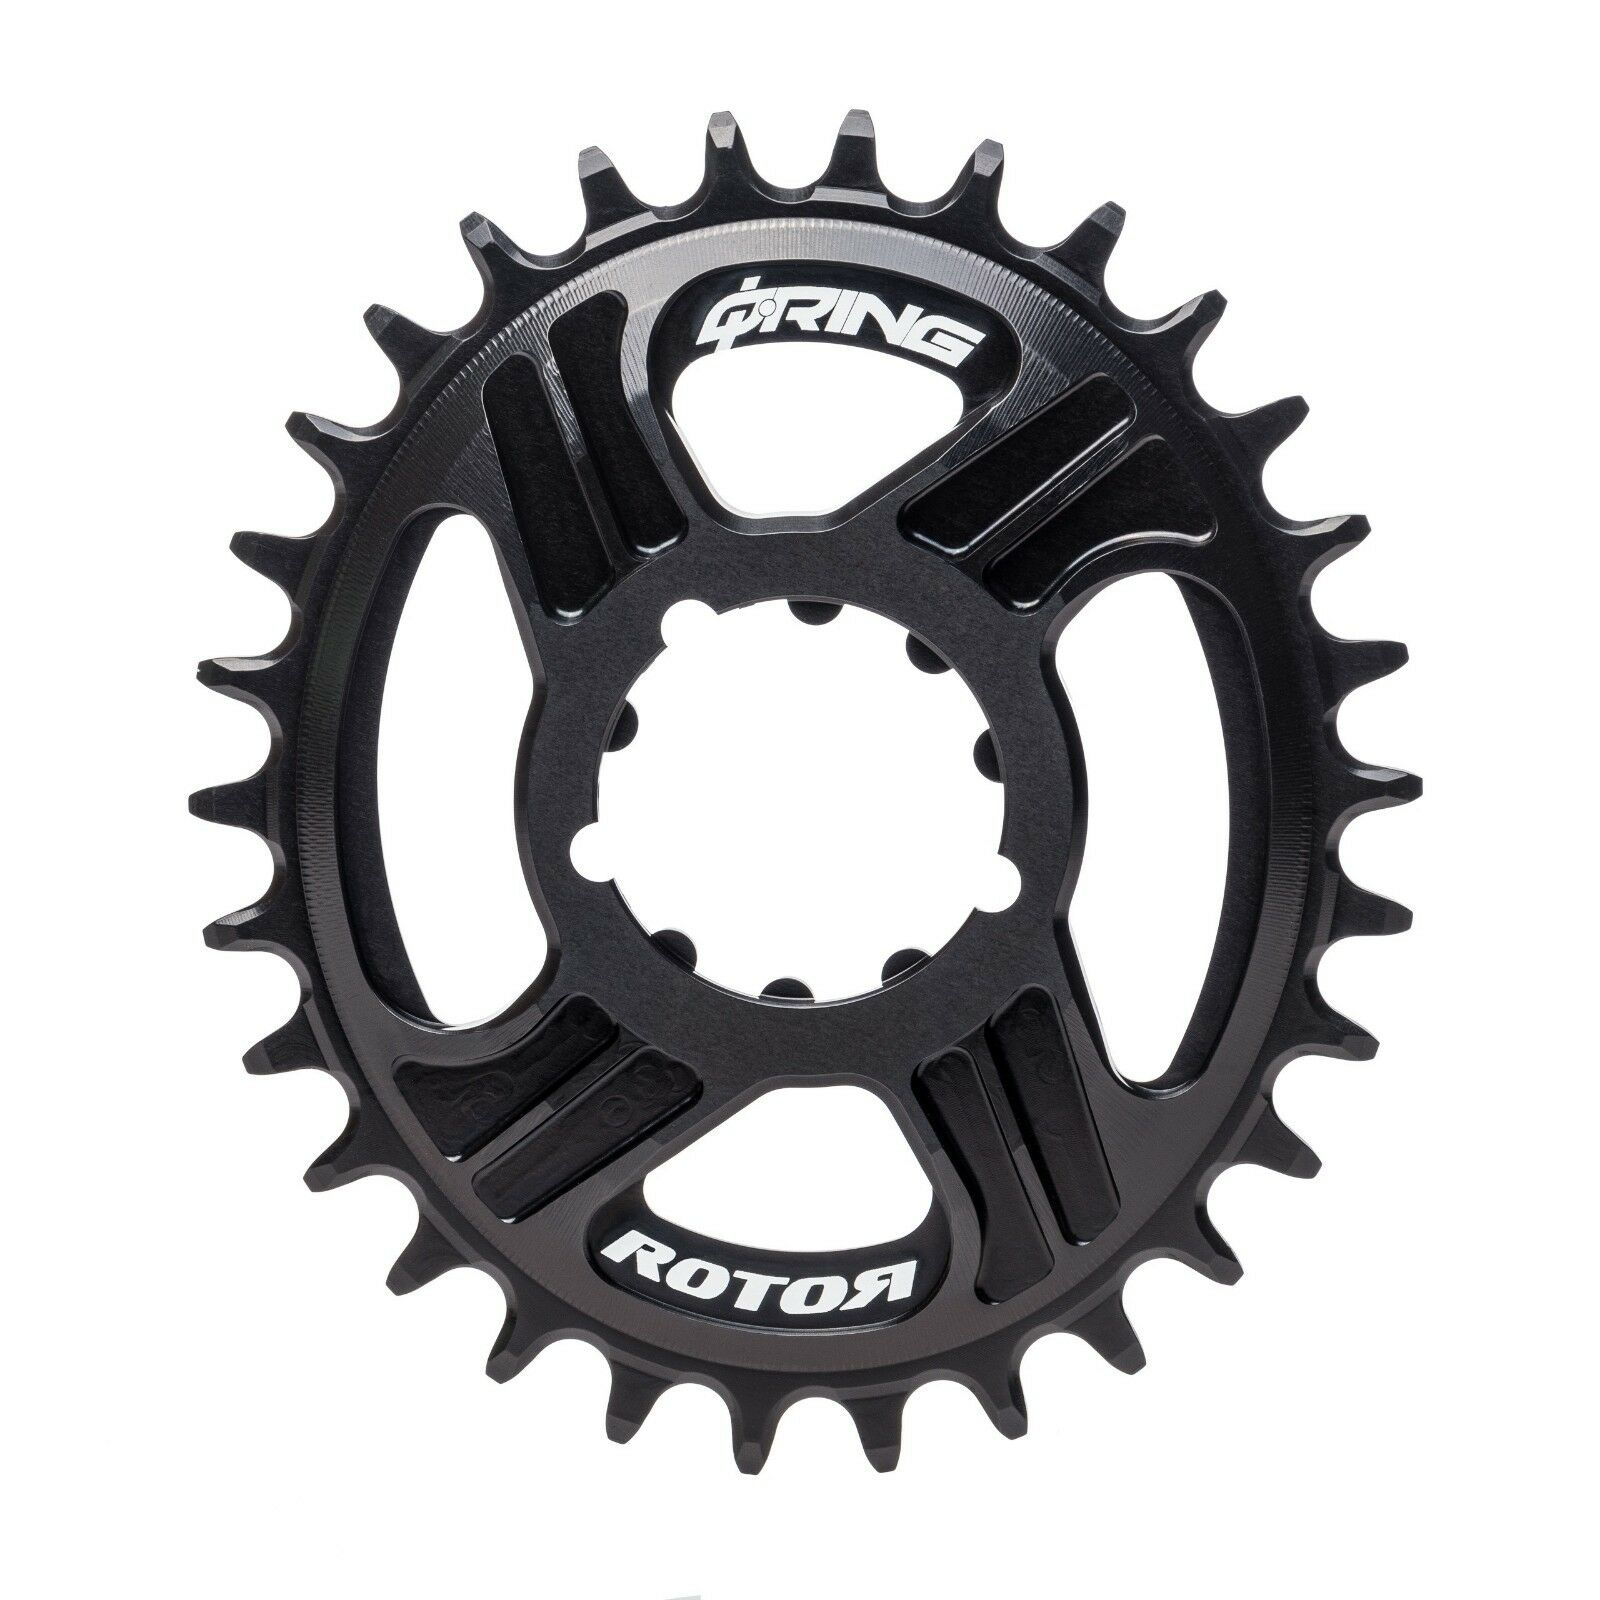 redOR DM Oval Chainring Qring SRAM GXP® -Direct Mount Single  Chainring  more order